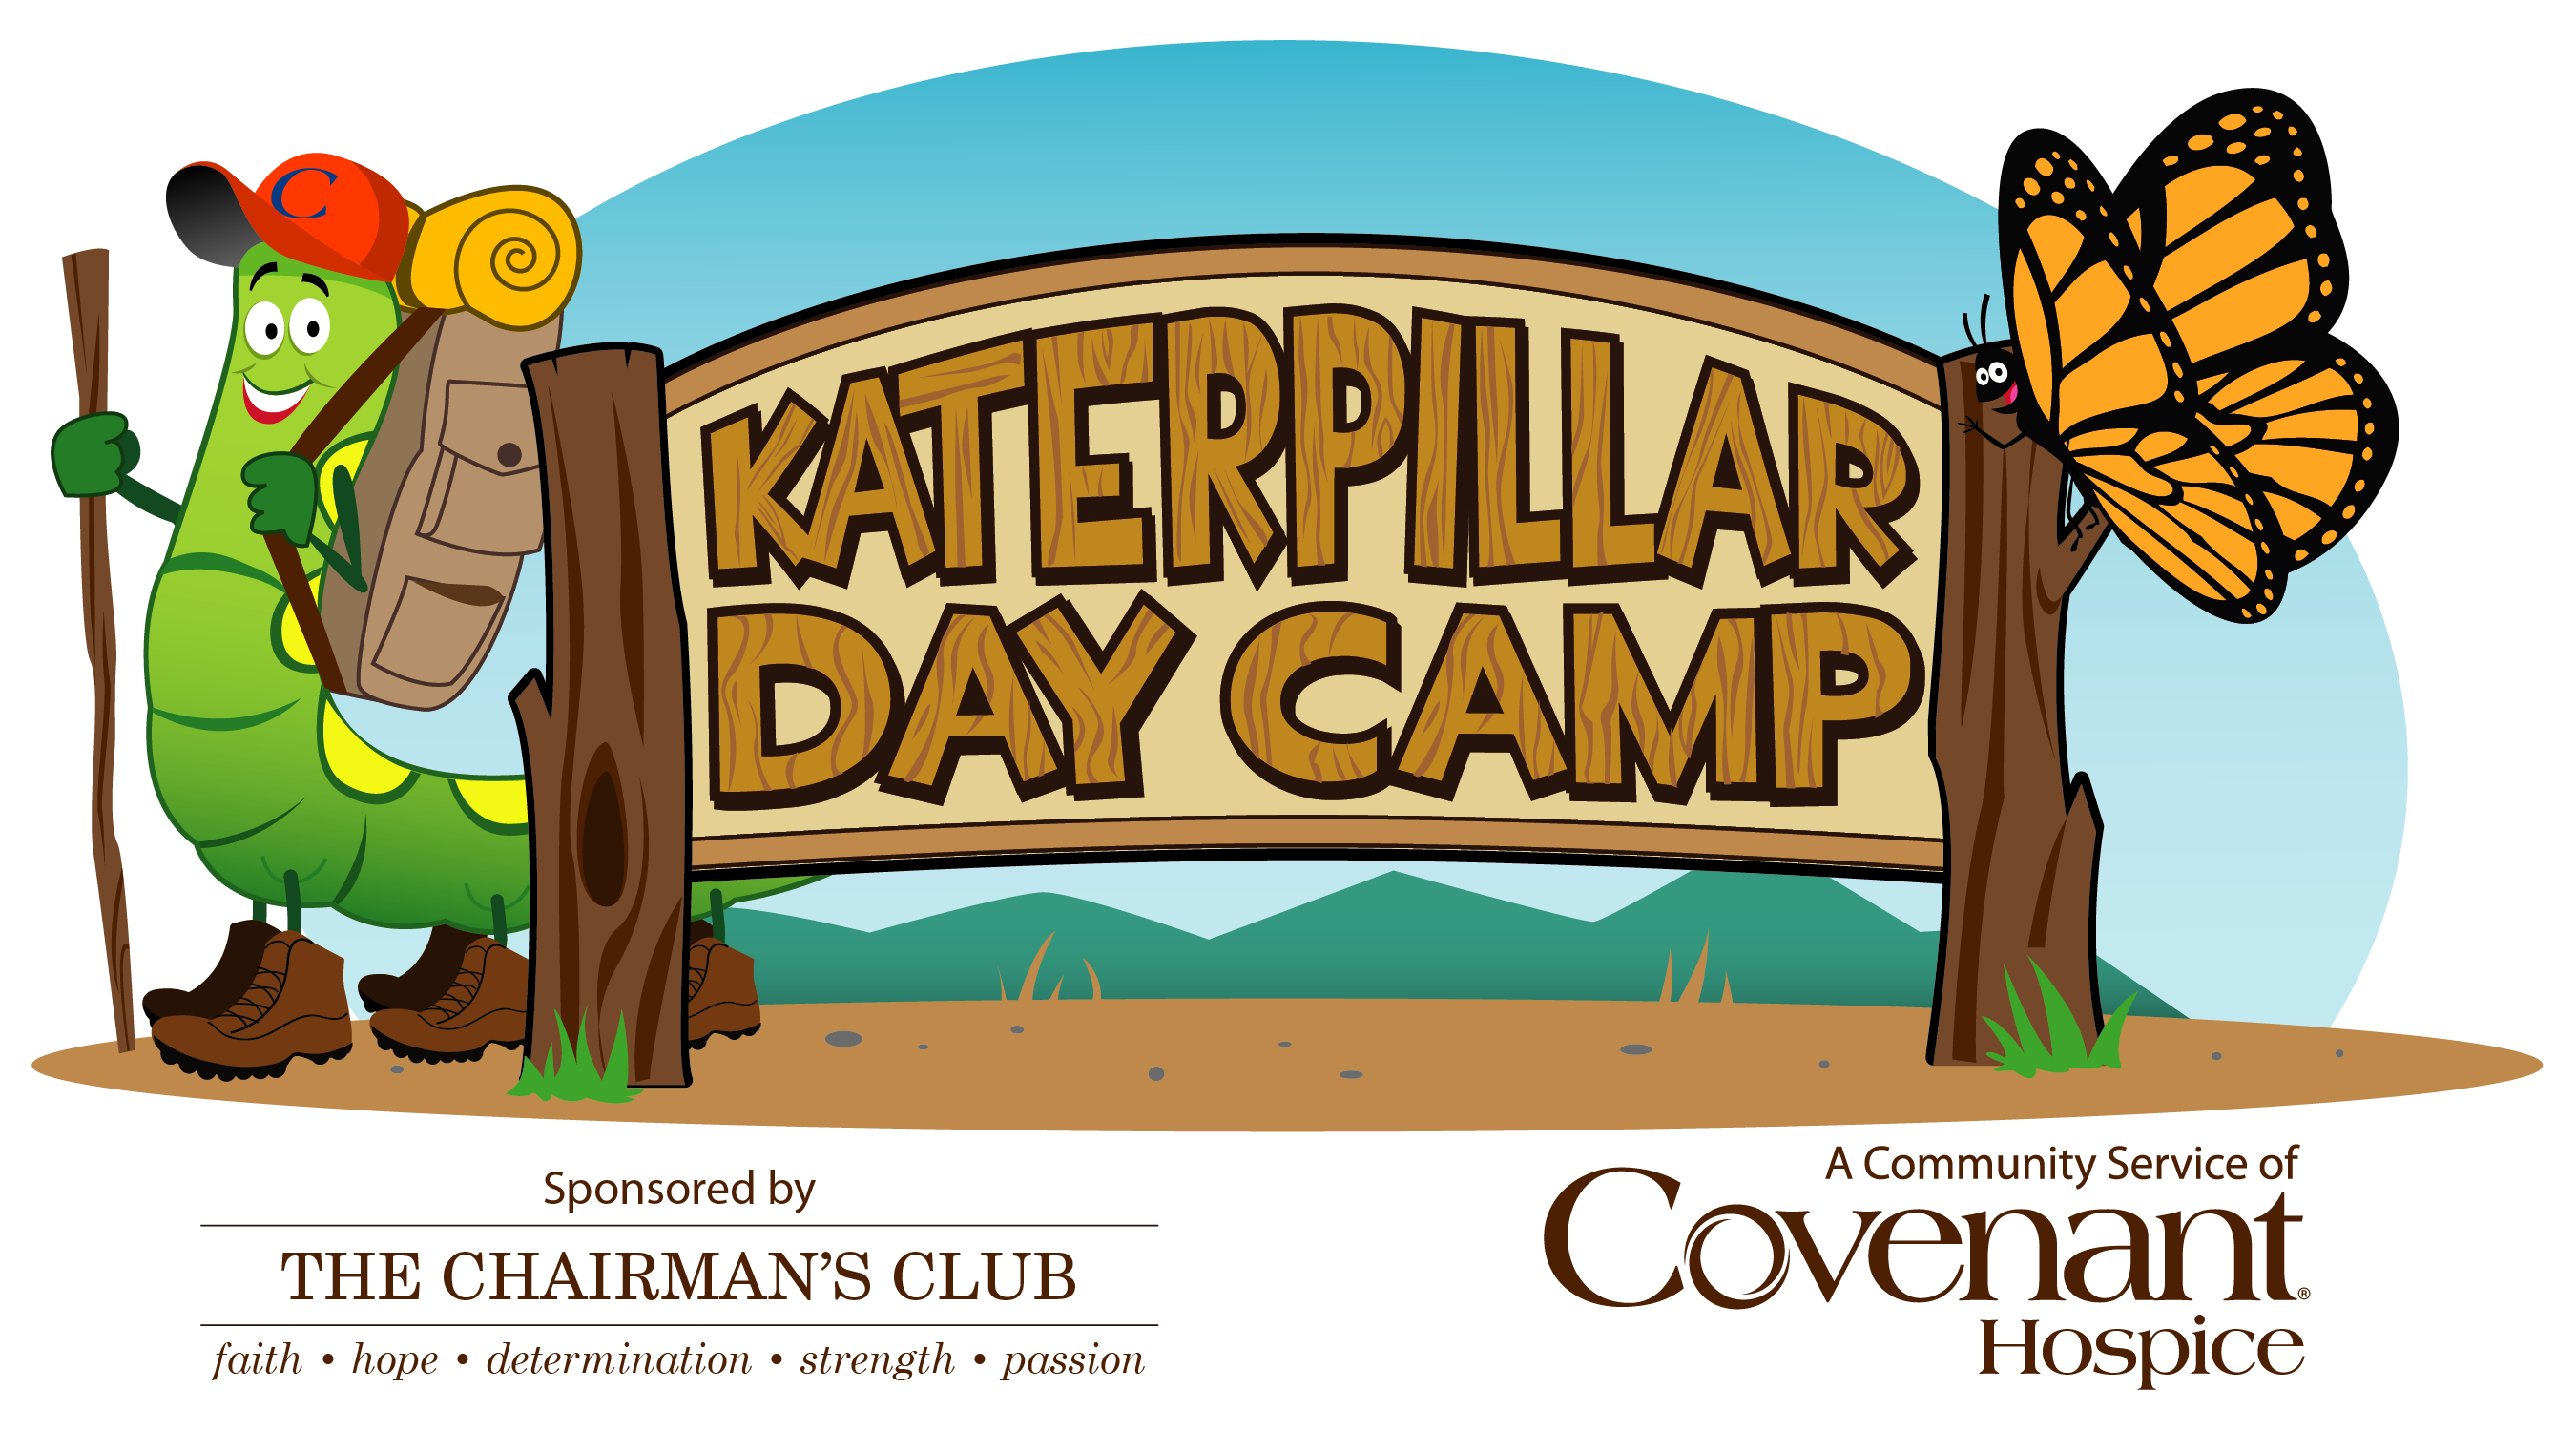 Katerpillar Day Camp logo